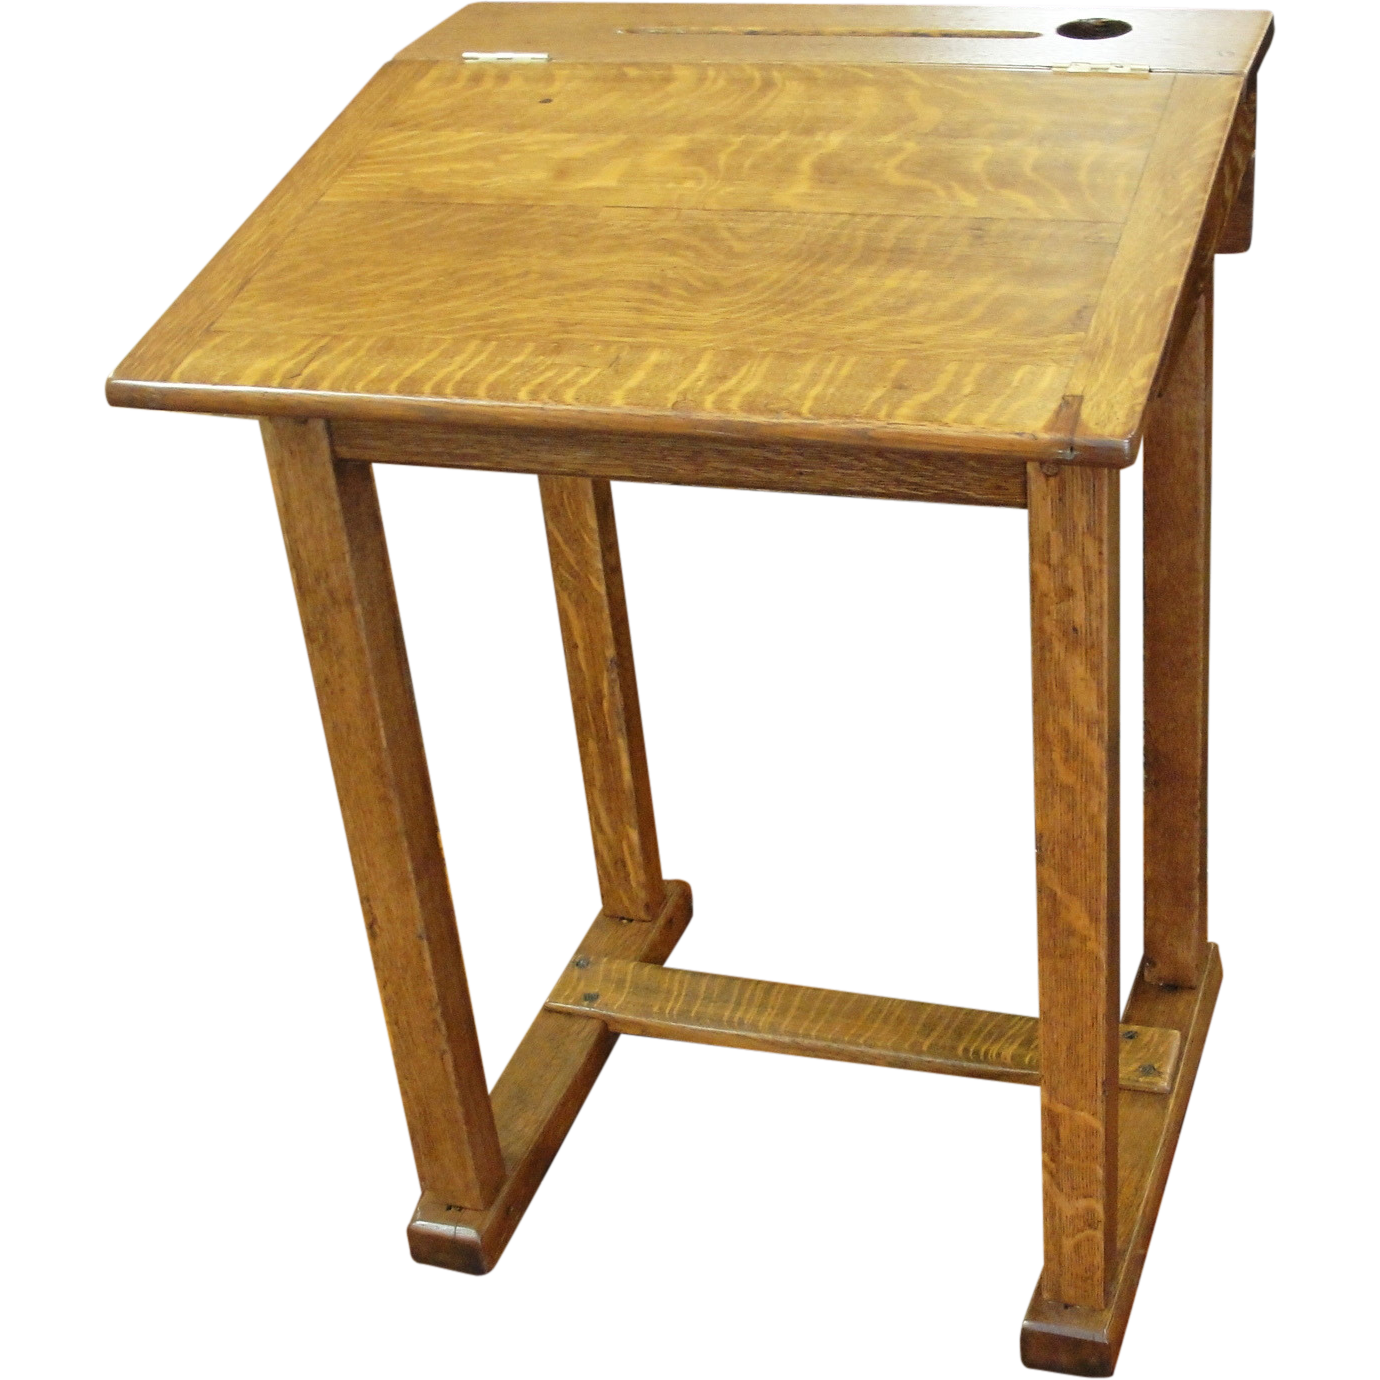 Vintage Oak School Desk Converts from Flat to Slant Top